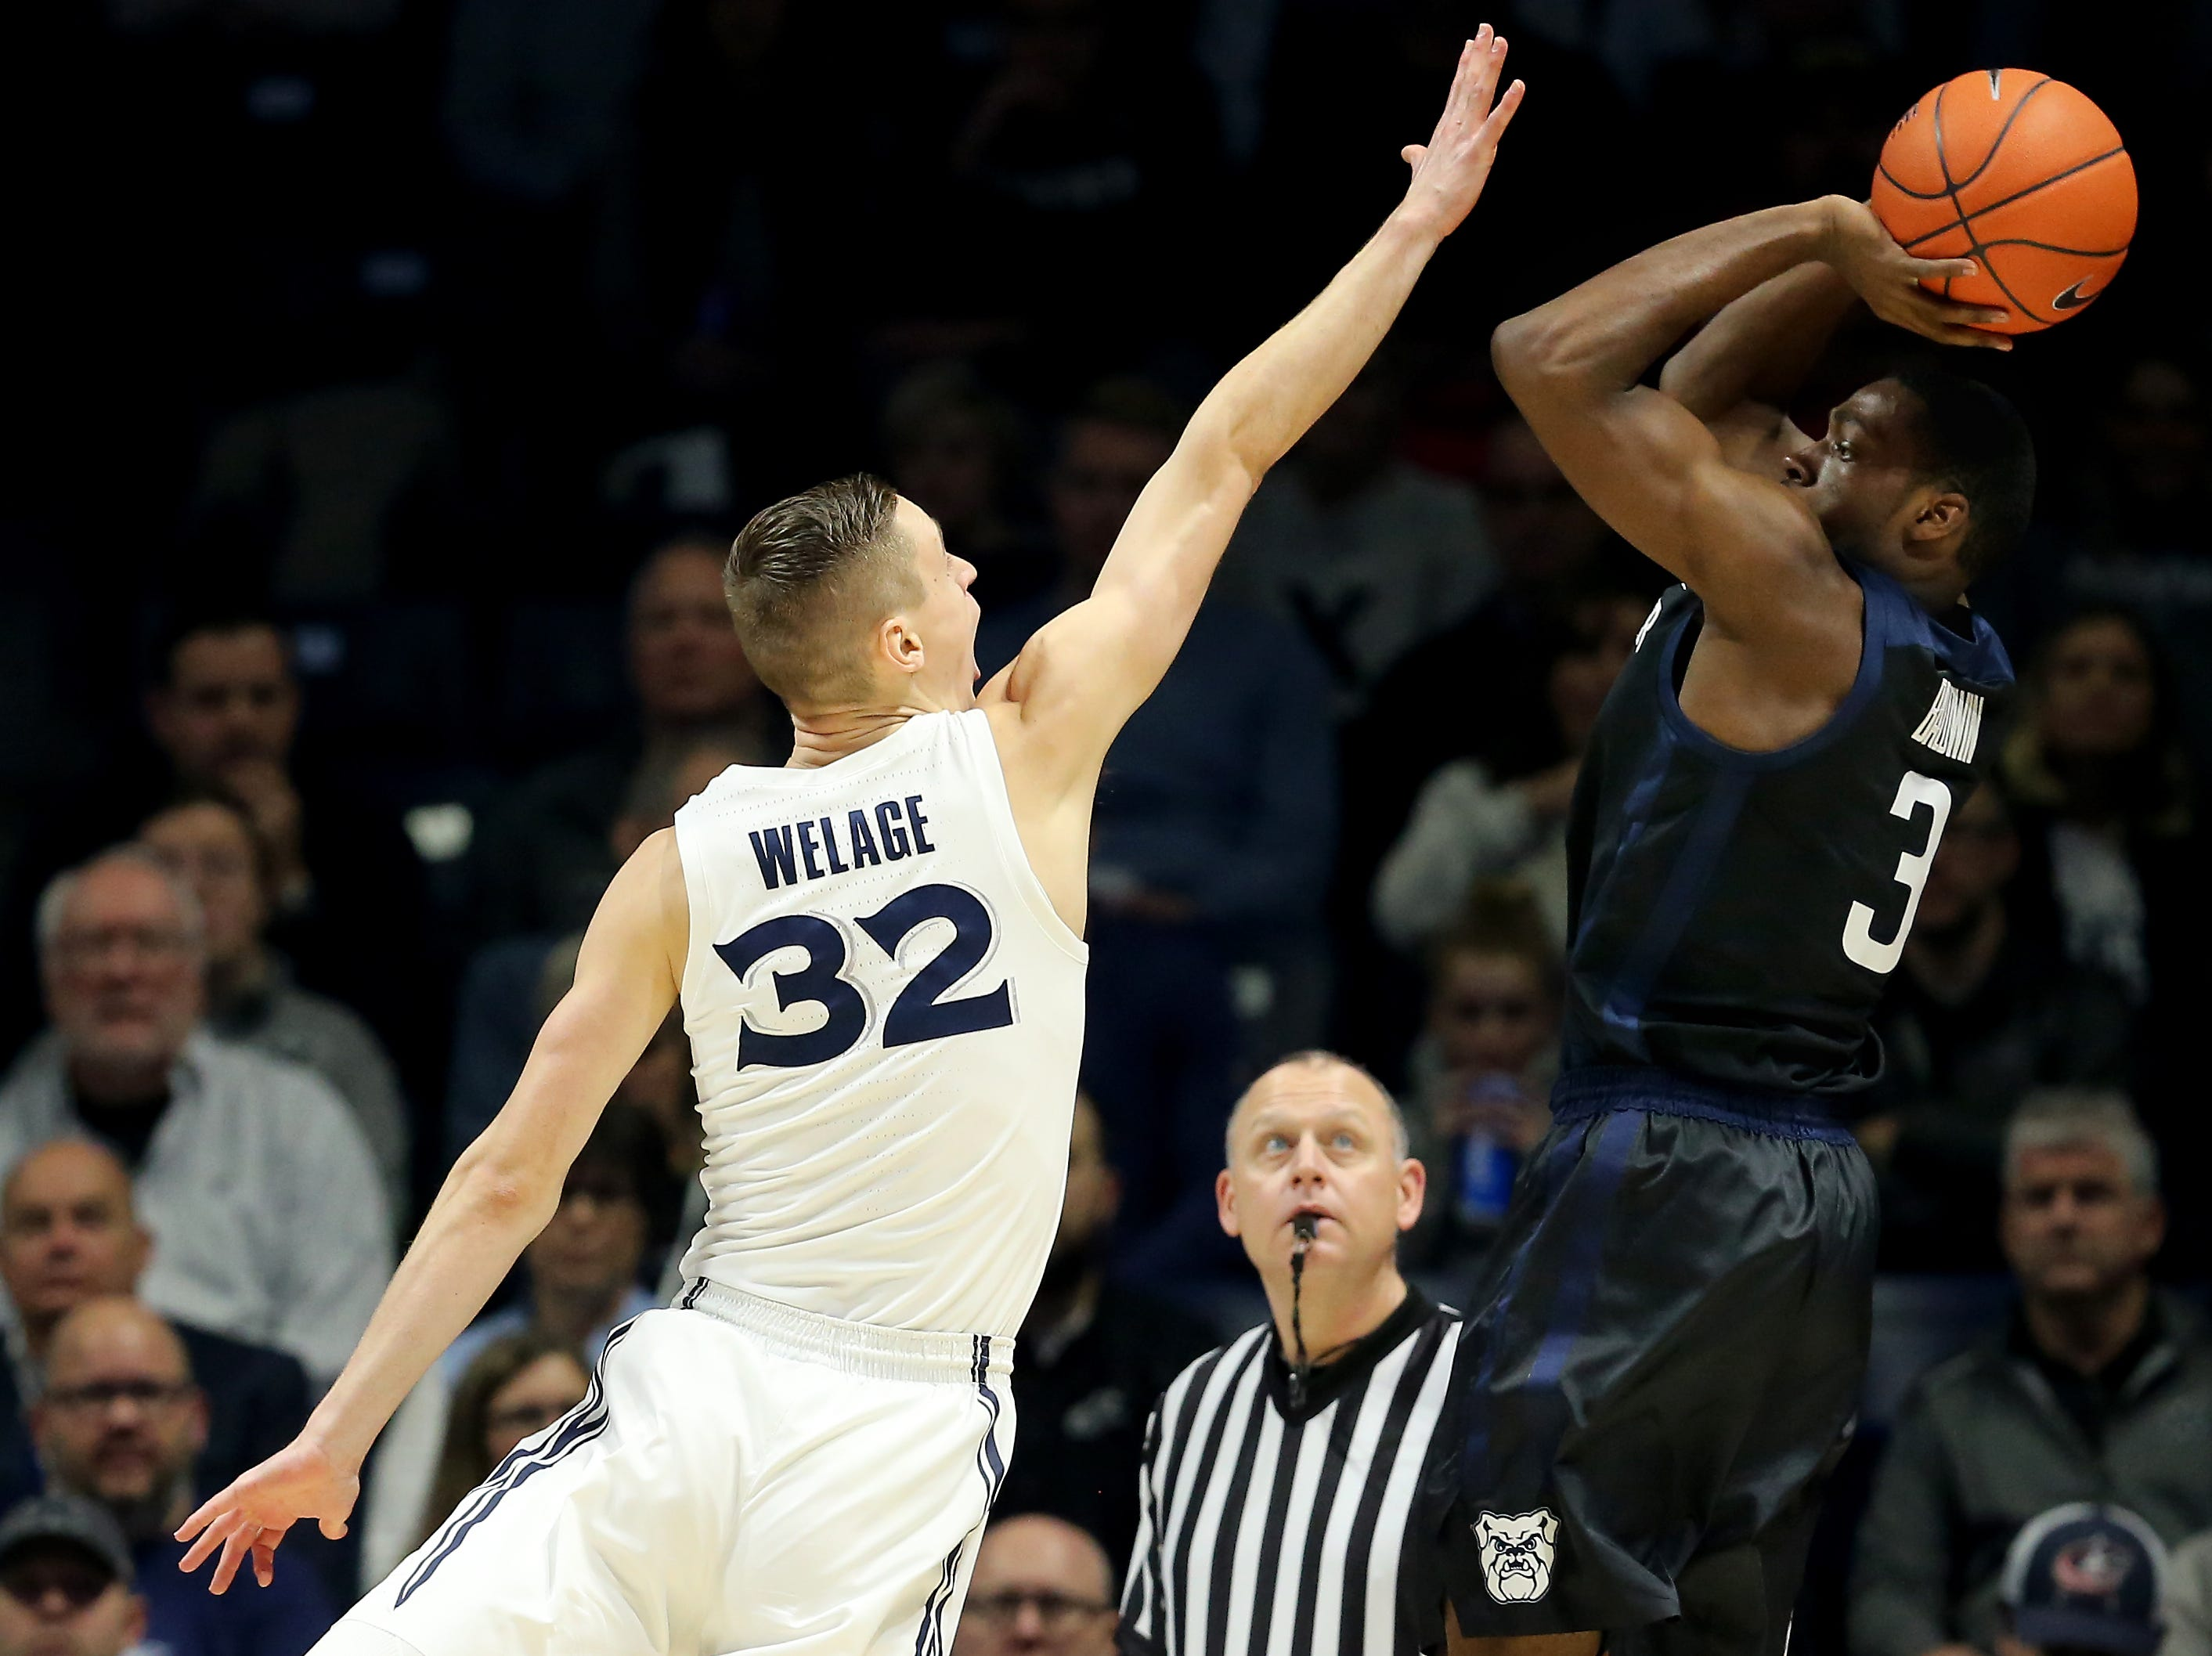 Butler Bulldogs guard Kamar Baldwin (3) rises for a shot as Xavier Musketeers forward Ryan Welage (32) defends in the first half of an NCAA college basketball game, Sunday, Jan. 13, 2019, at Cintas Center in Cincinnati.